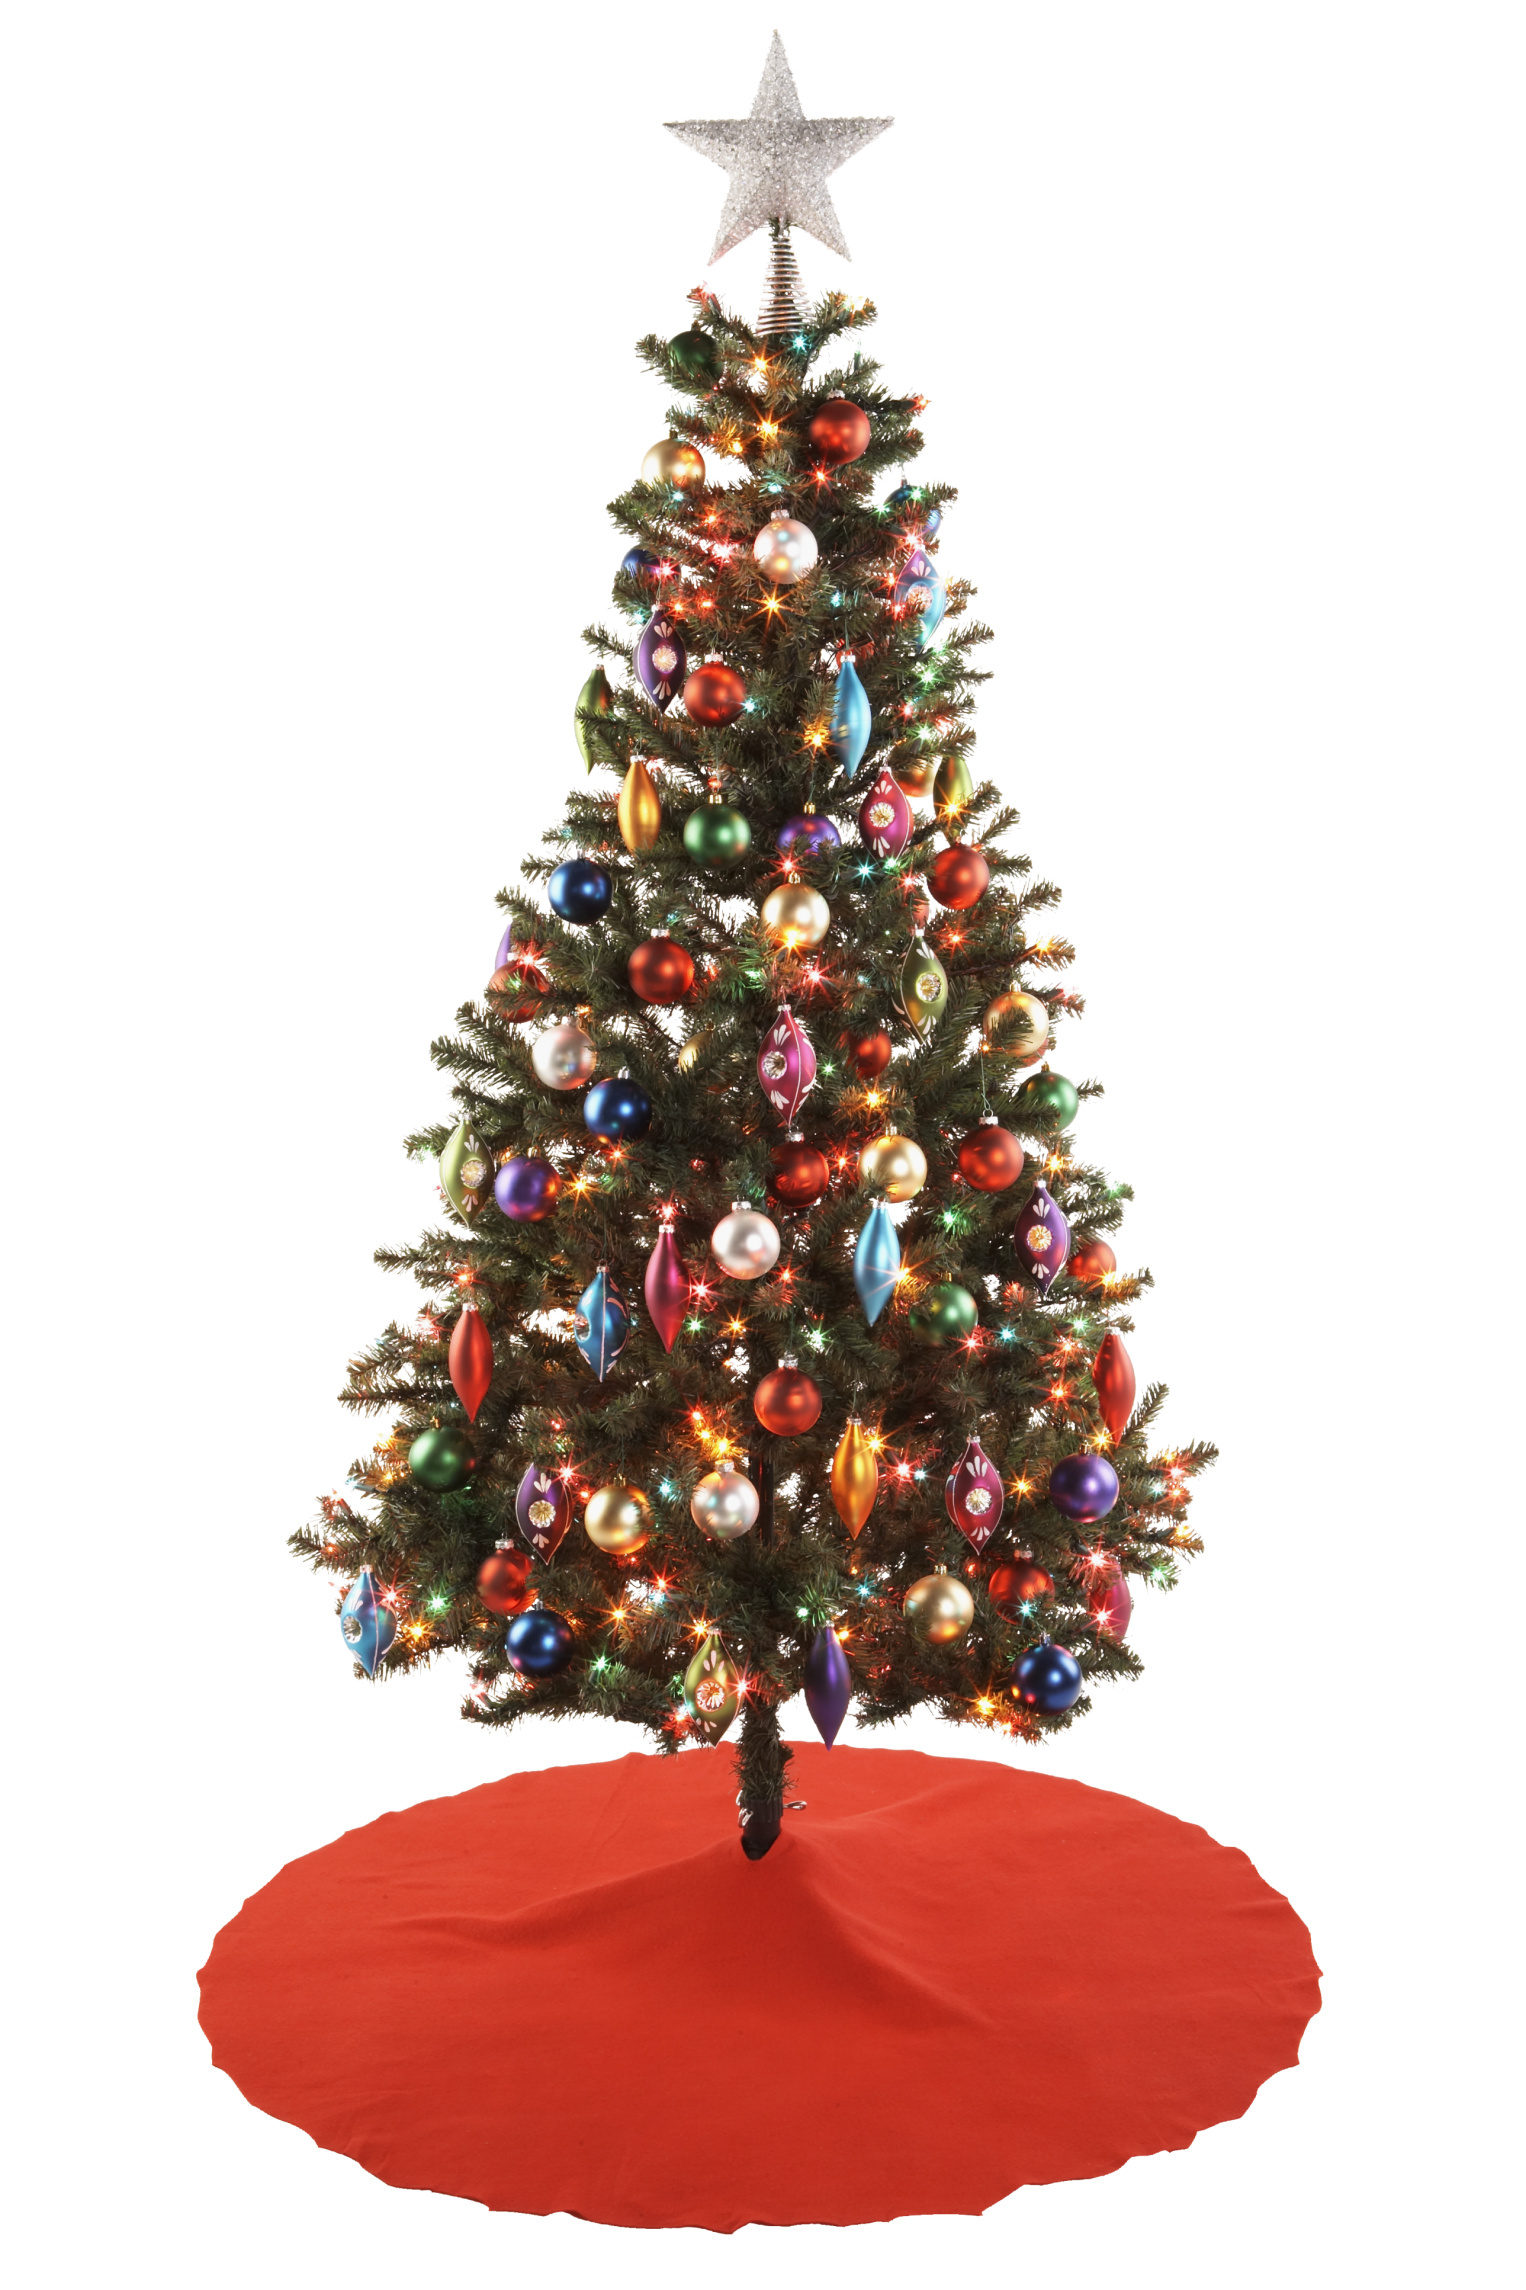 Christmas Tree Recycling Greenwich : Across bromley borough temporary recycling sites have been